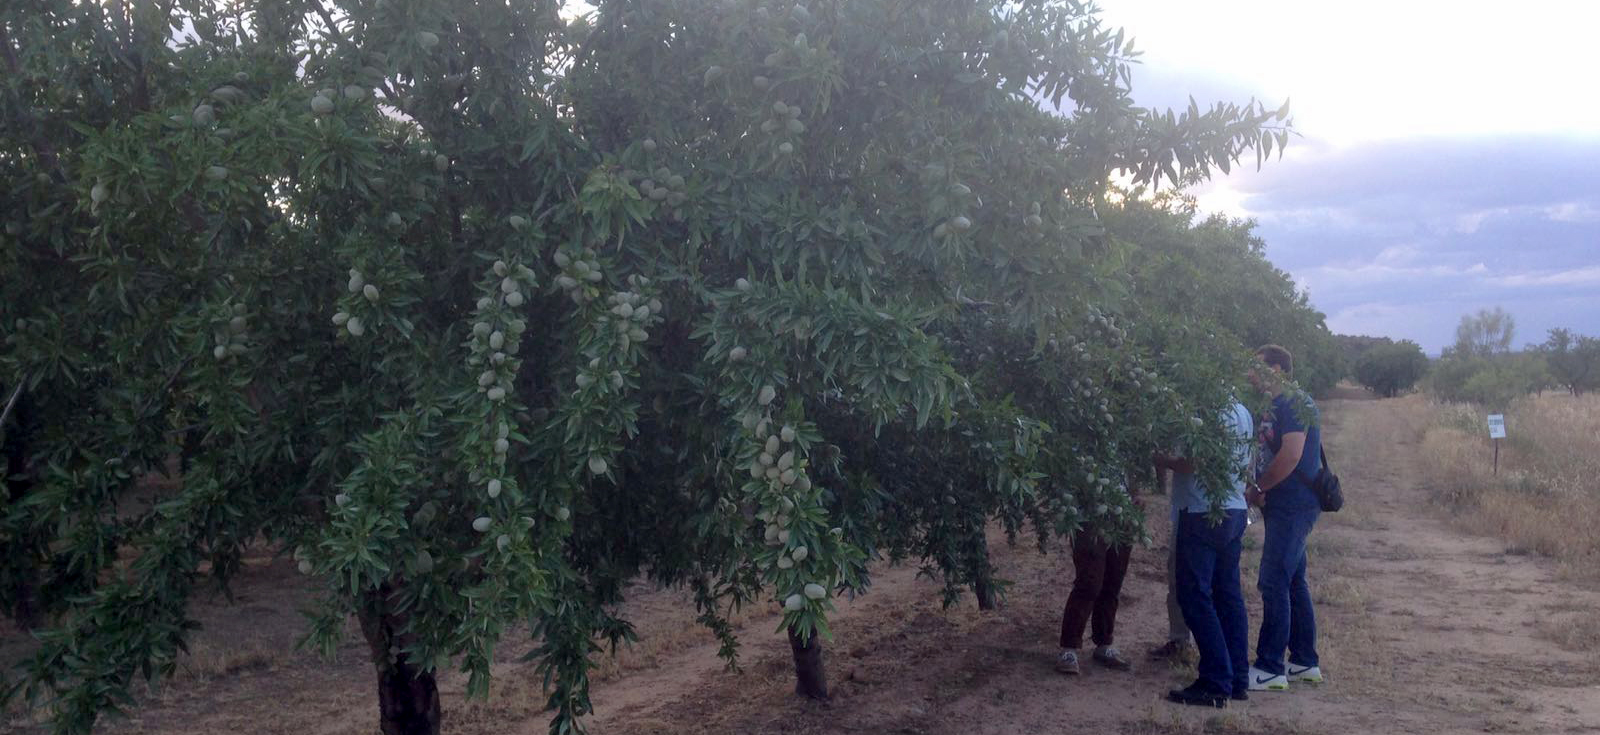 equipment_harvesting_for_almond_olives_pistachios_walnuts_agromelca